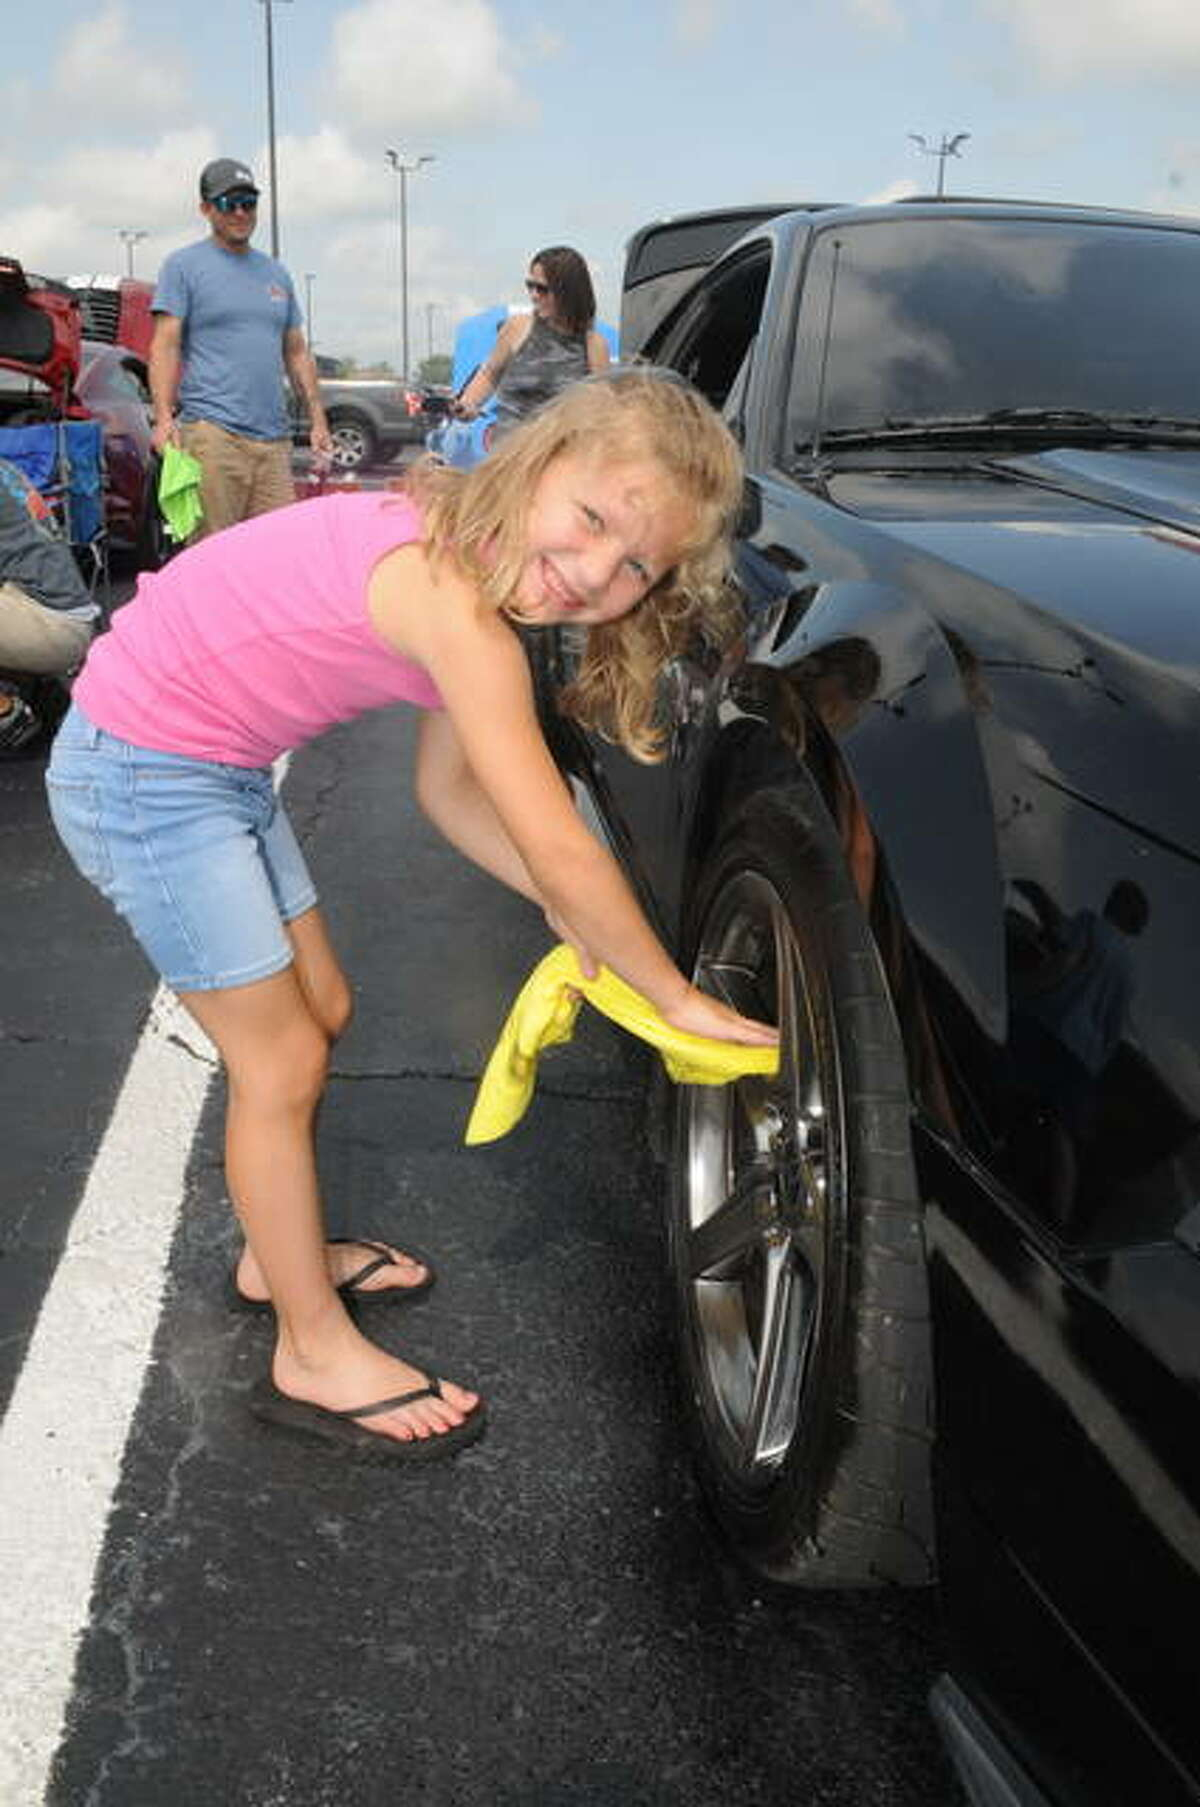 Six-year-old Kiersten Proffitt of Bethalto polishes her family's car during the 43rd Annual Mustang Round-Up and All Ford Car Show in Alton on Saturday.